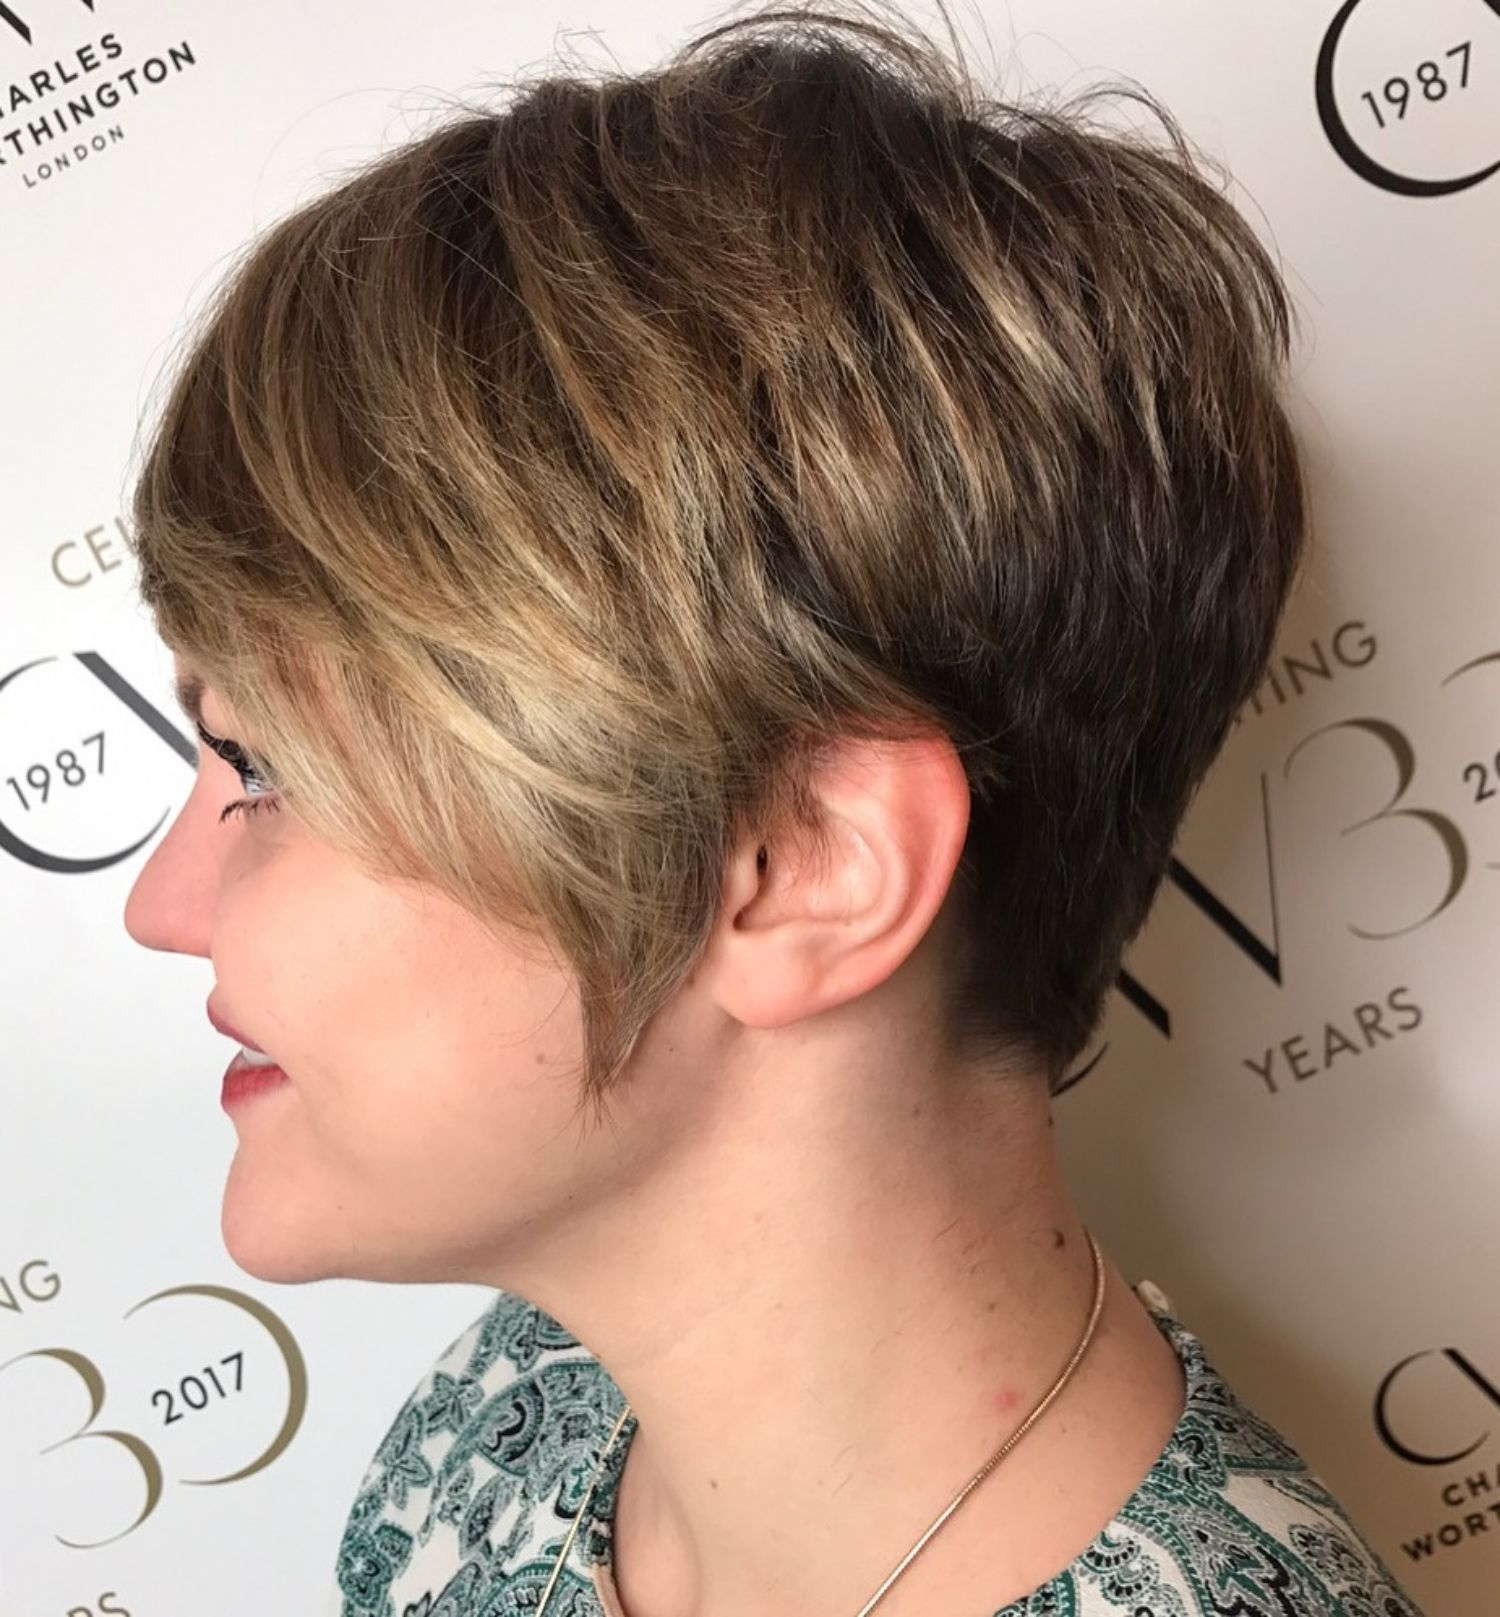 100 Short Haircut Styles for Over 50 Women in 2021 d810db19610b1d67873e7ceb6bb9b2a3